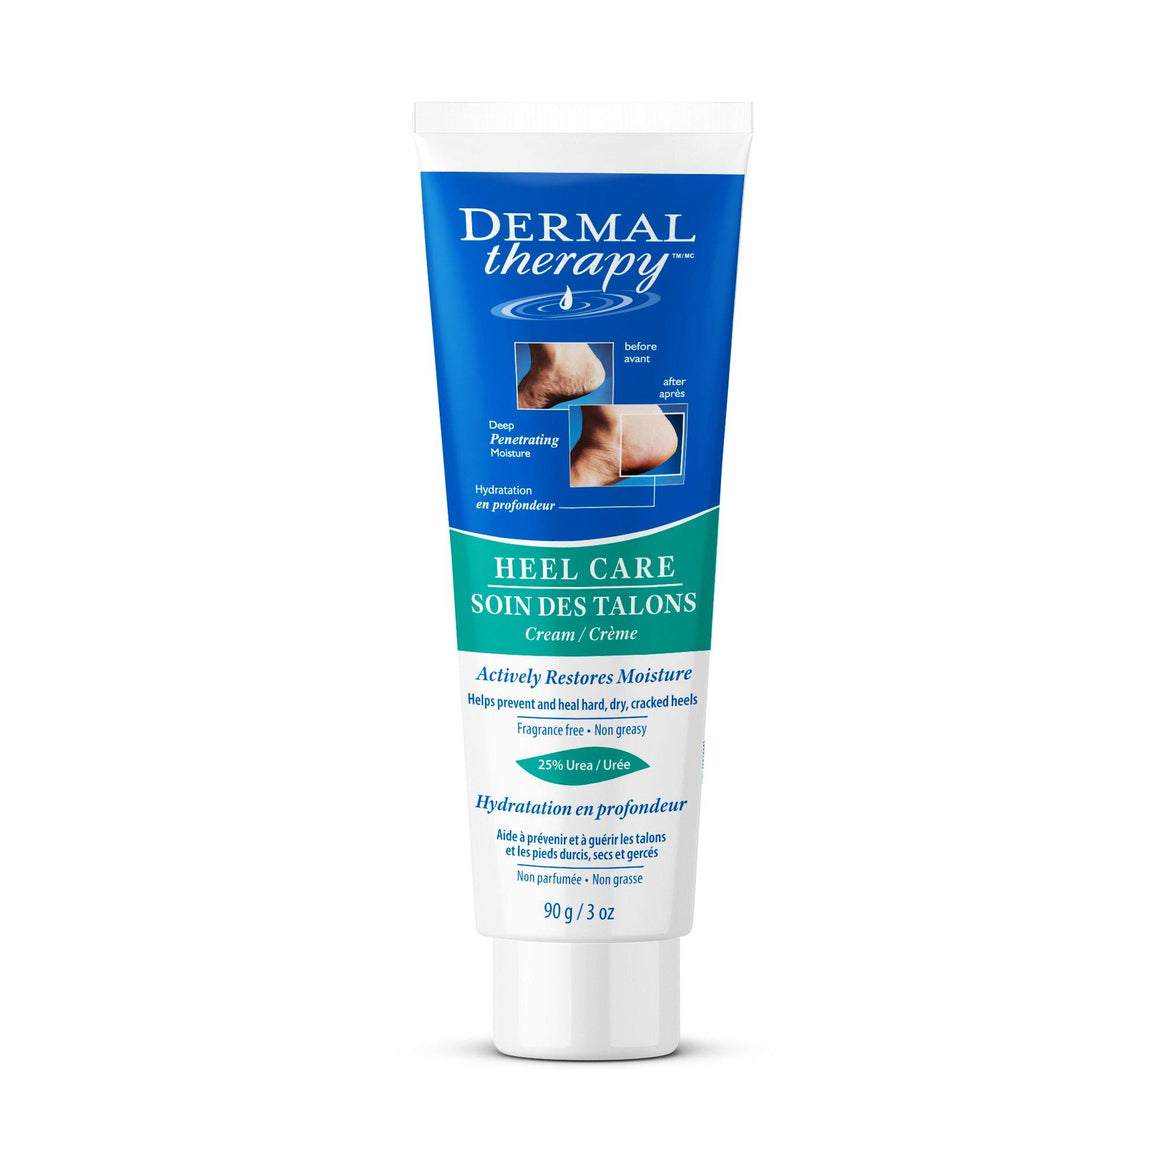 DTR Heel Care Cream